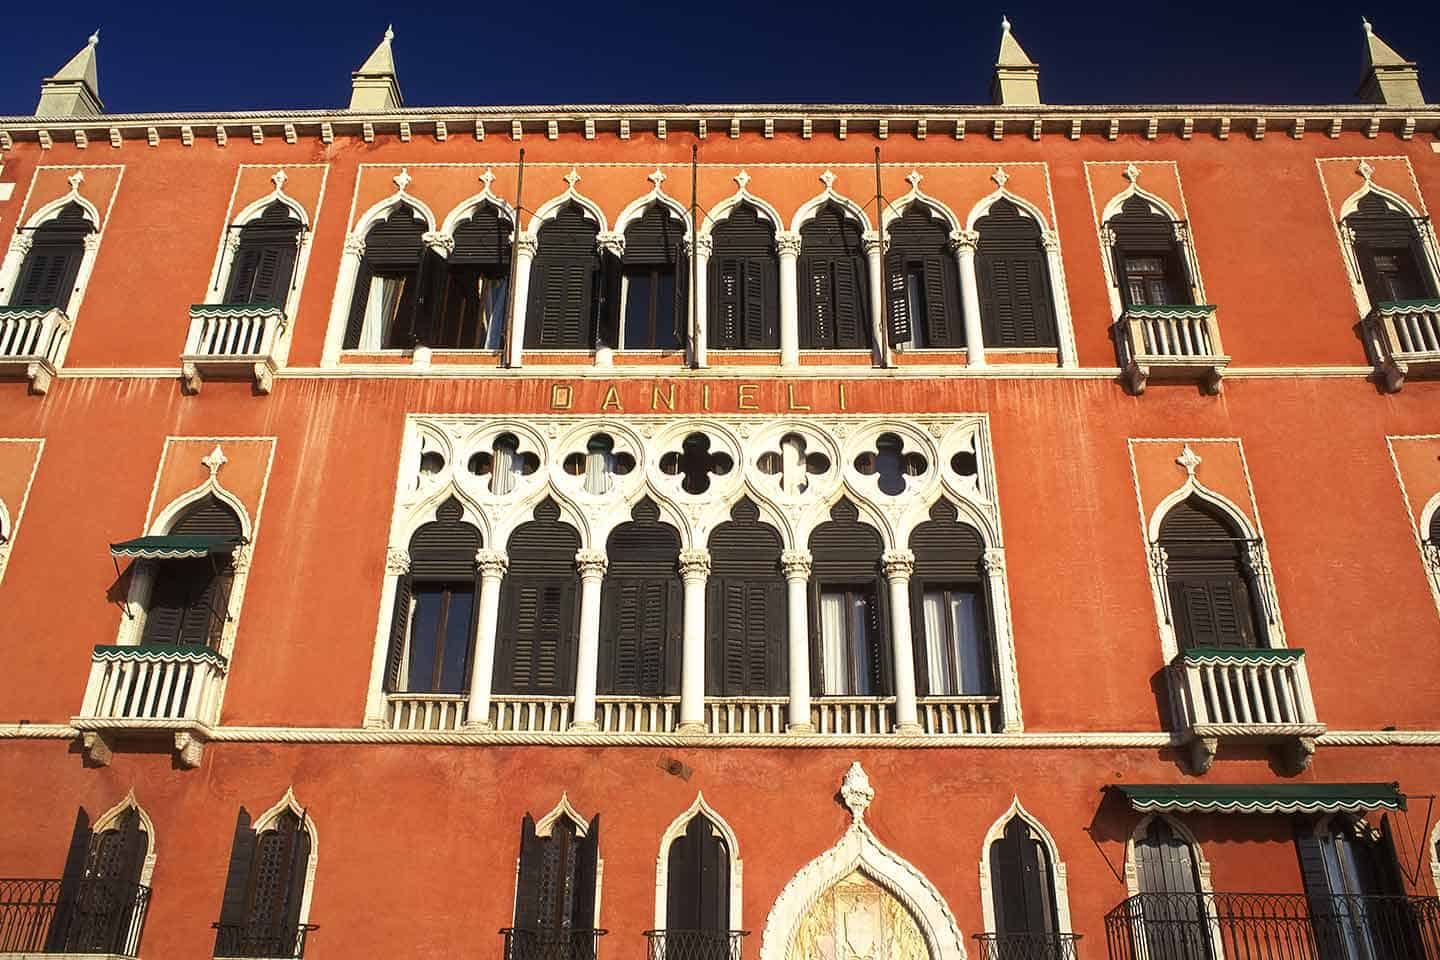 Image of the Hotel Danieli in Venice